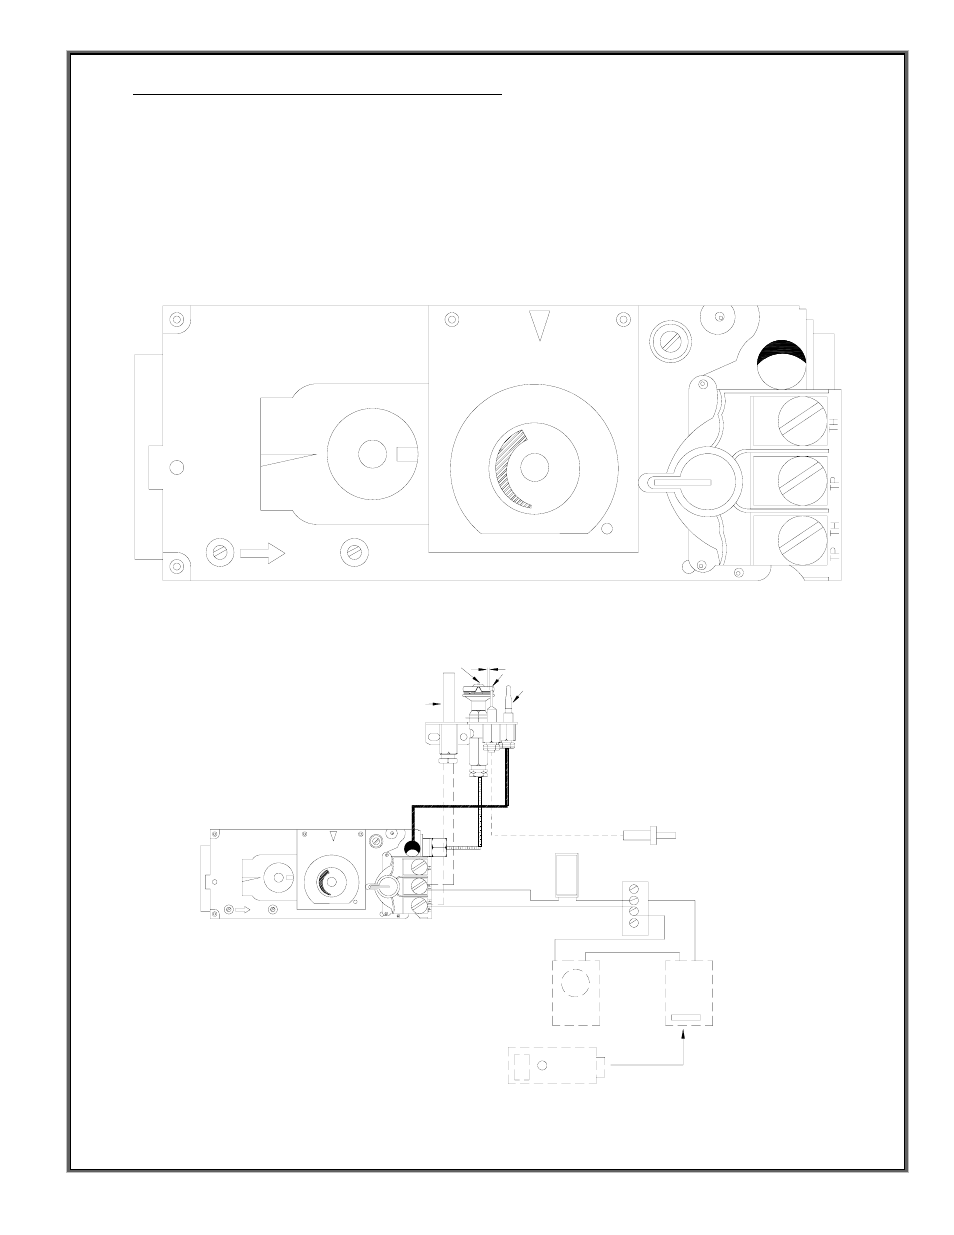 hight resolution of sit 820 nova mv gas control valve on off pilot hi lo version 1 0